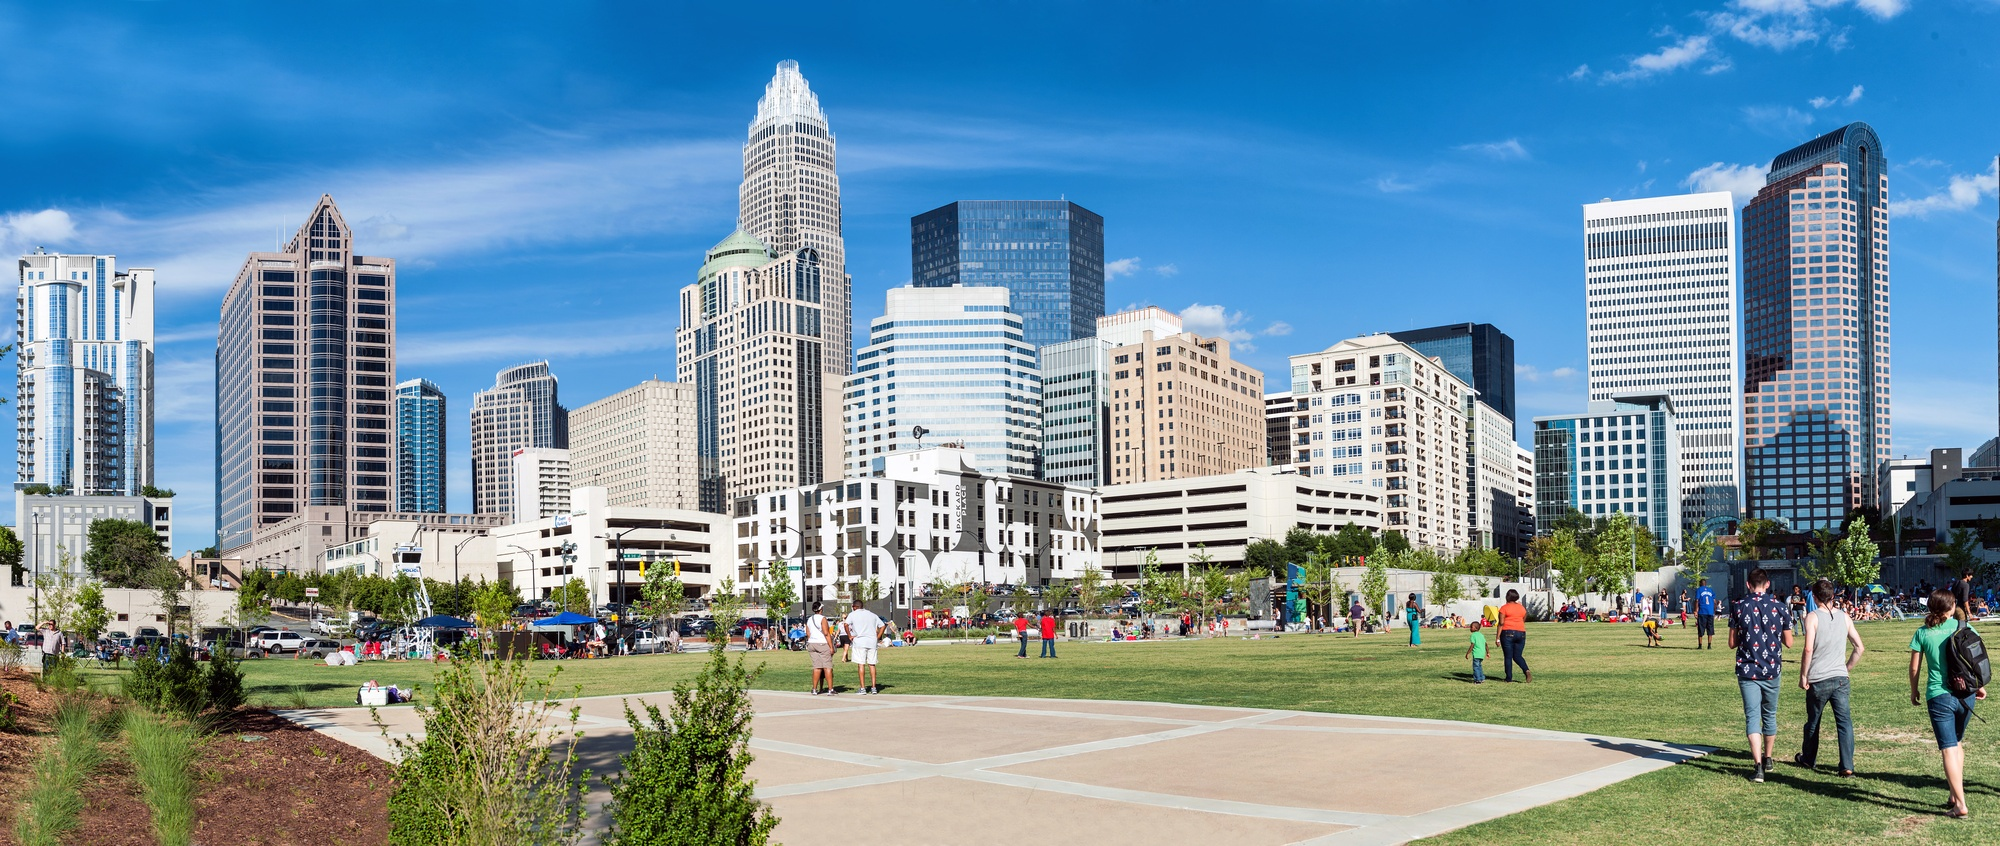 things to do in charlotte